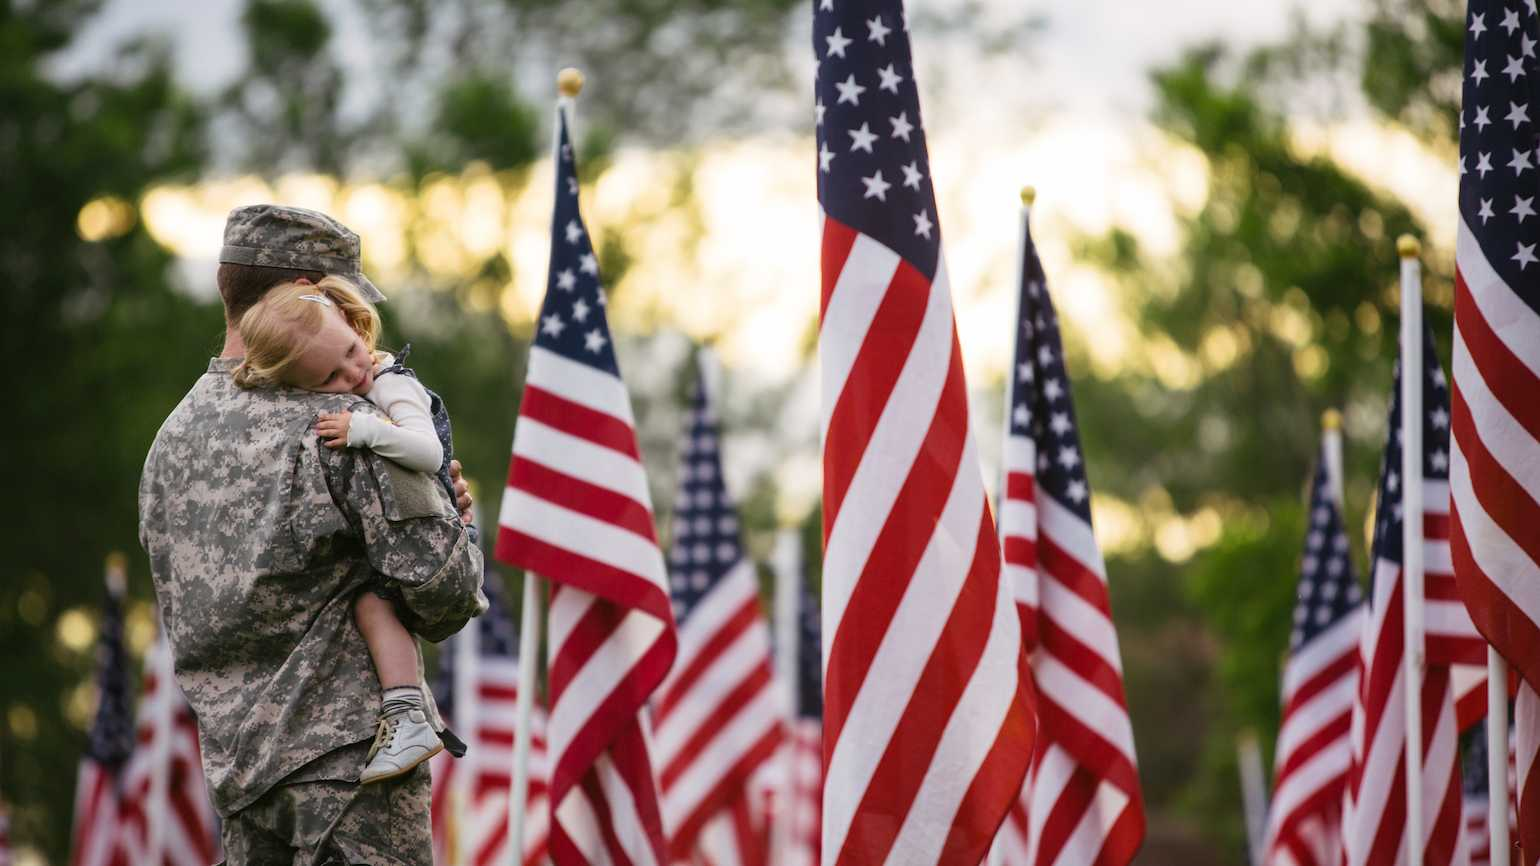 Appreciating our military